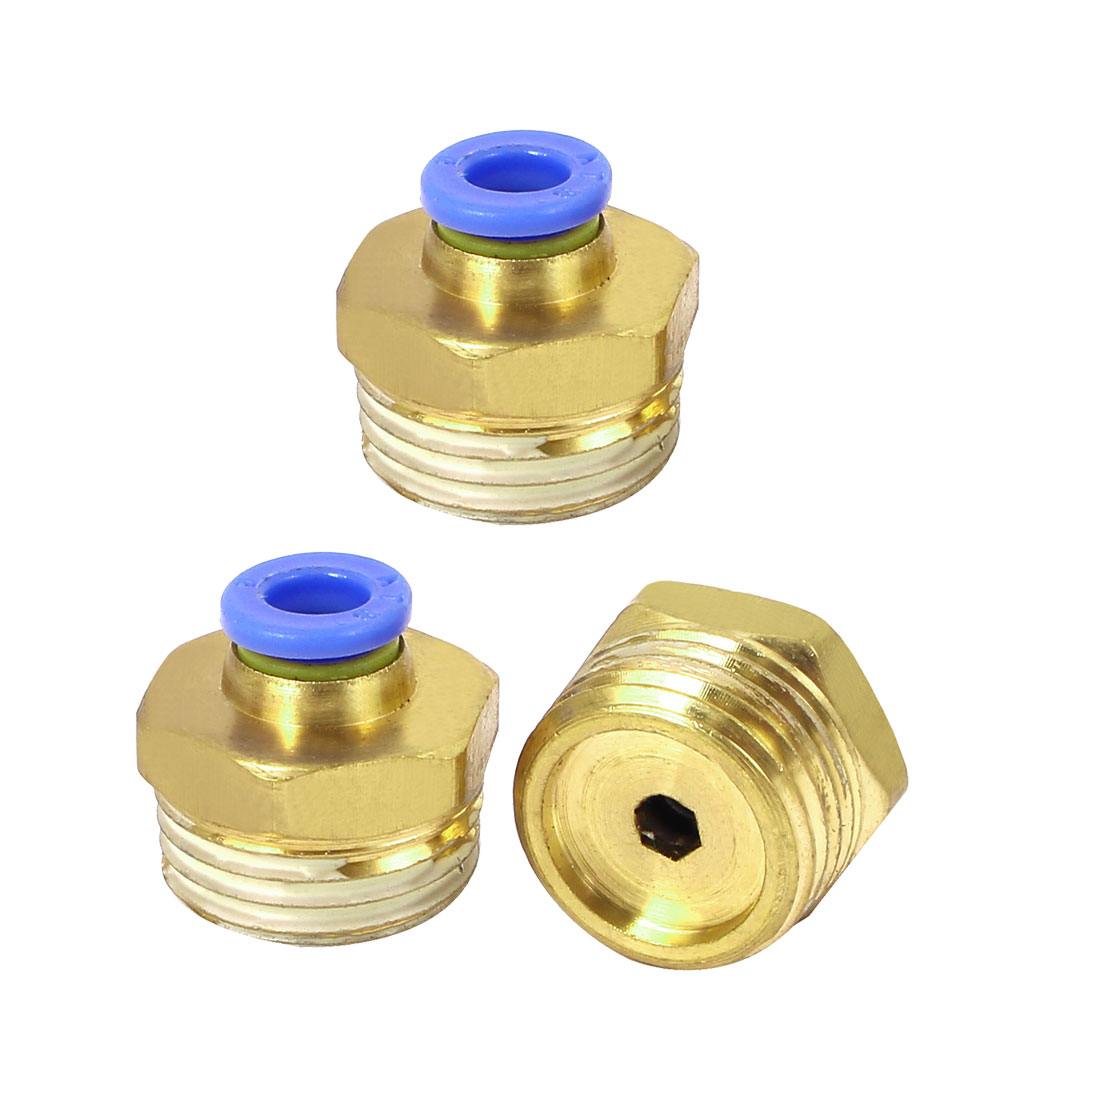 20mm Dia Male Thread Industry Pipe Tube Quick Connecting Fittings 3pcs